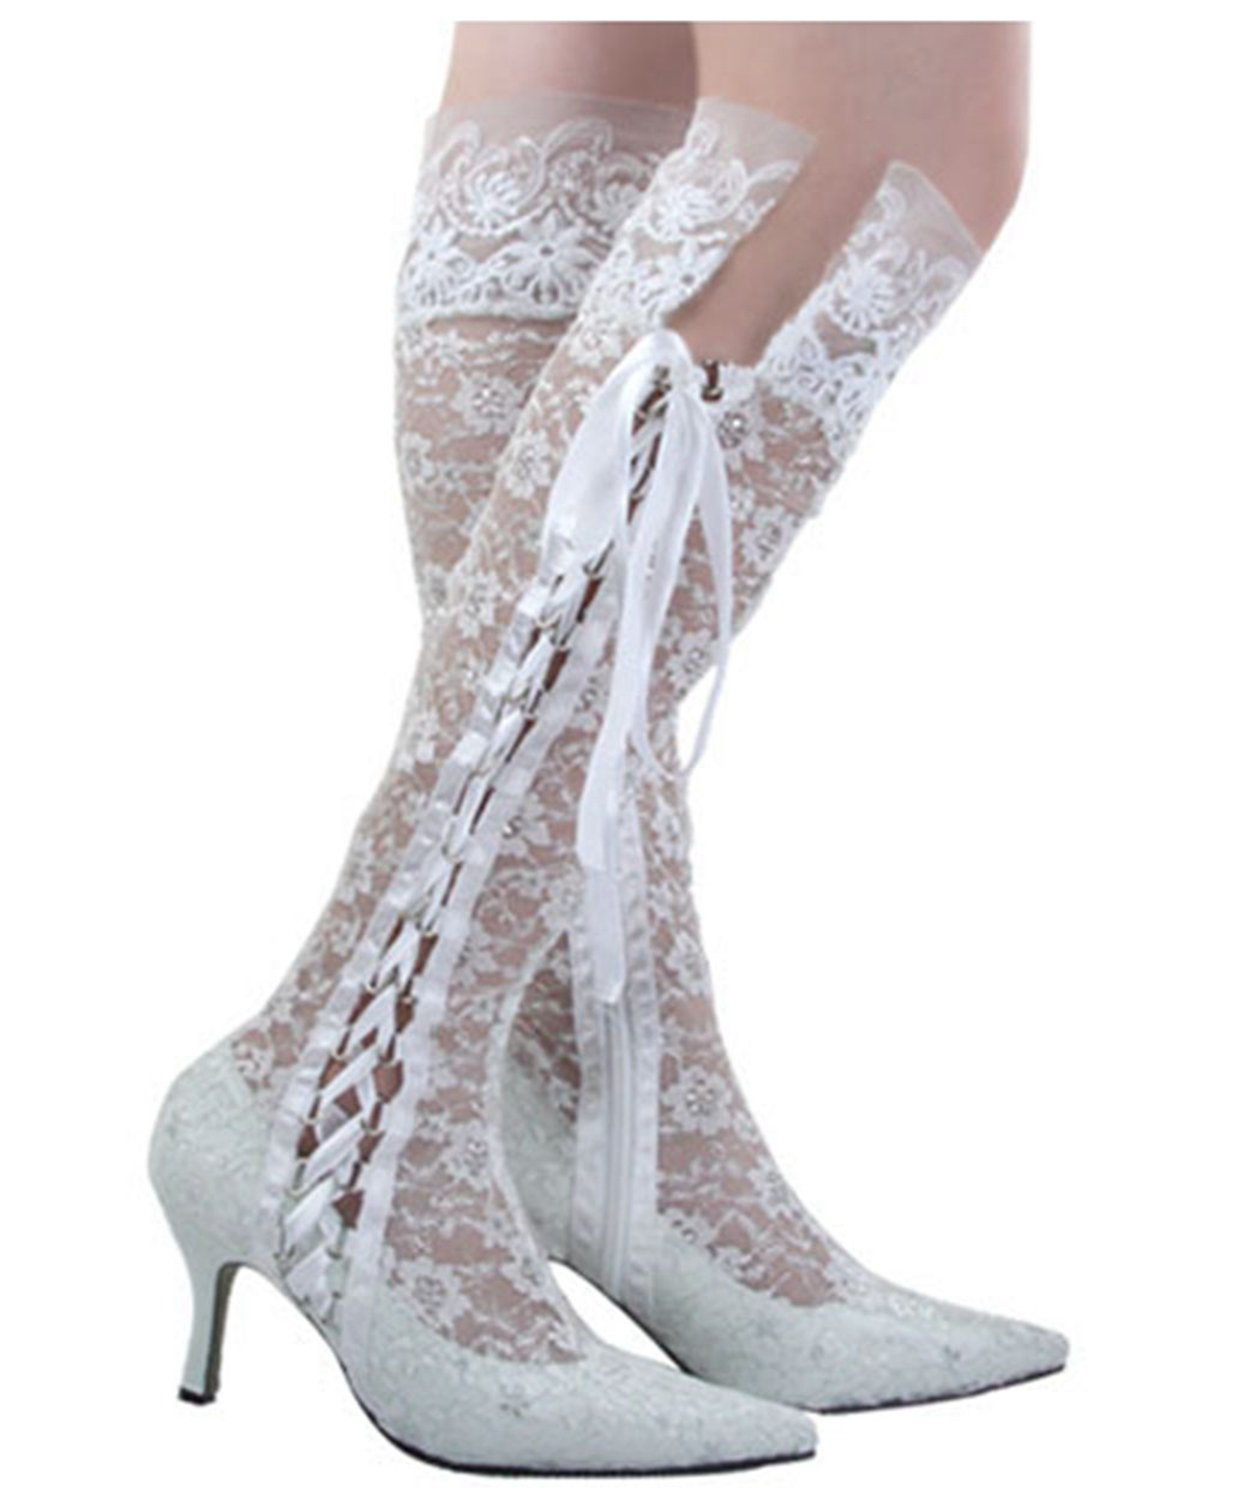 Minishion Womens Pointy Toe High Heel Bride Wedding Lace Shoes Knee-high Boots B00EUBUM12 10 B(M) US|White-7.5cm Heel